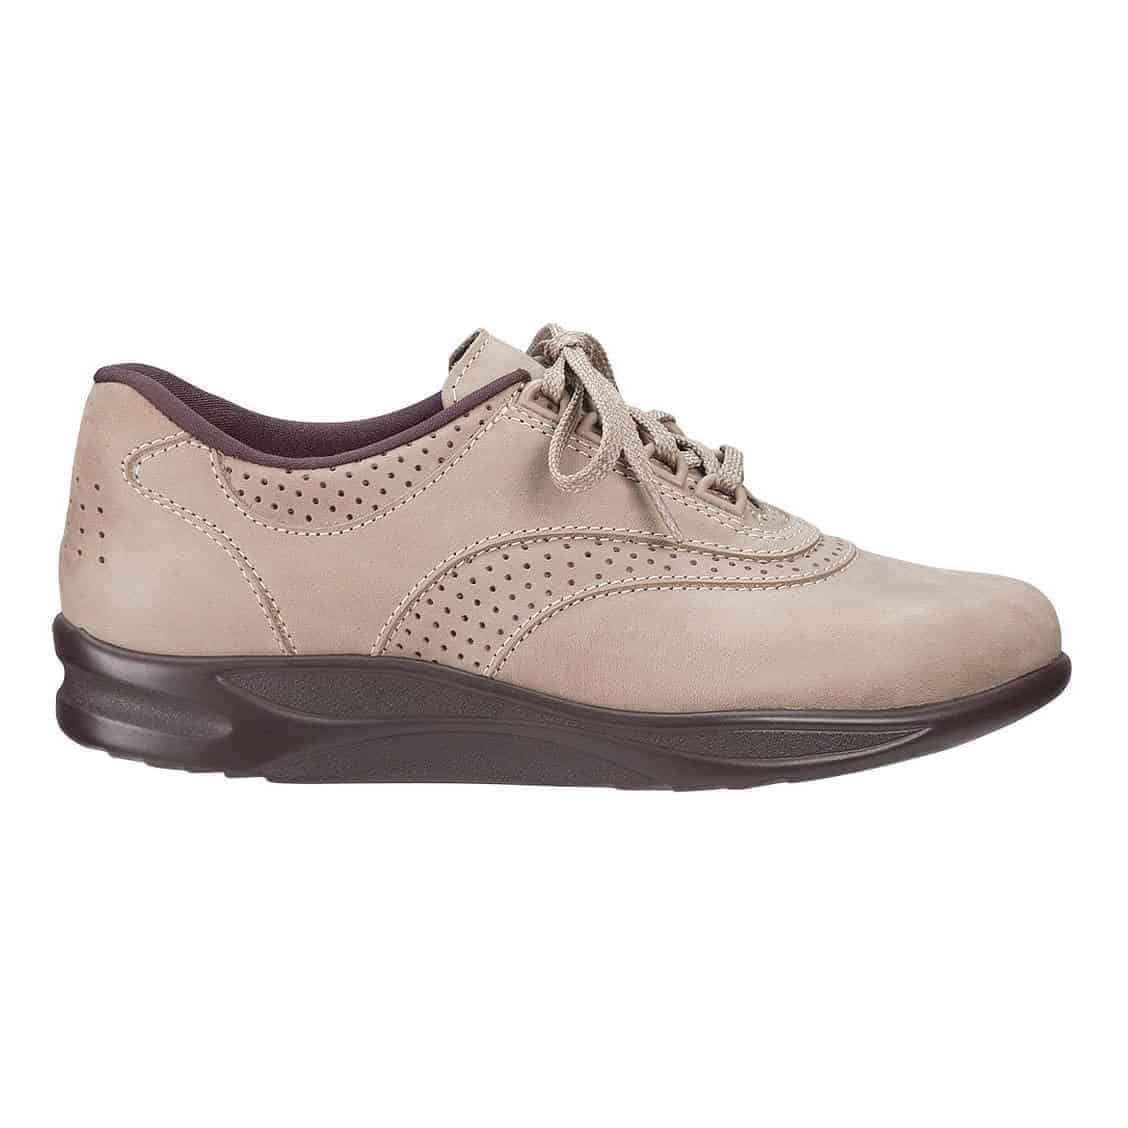 sas-womens-walk-easy-sage-nubuck-2380-228-3